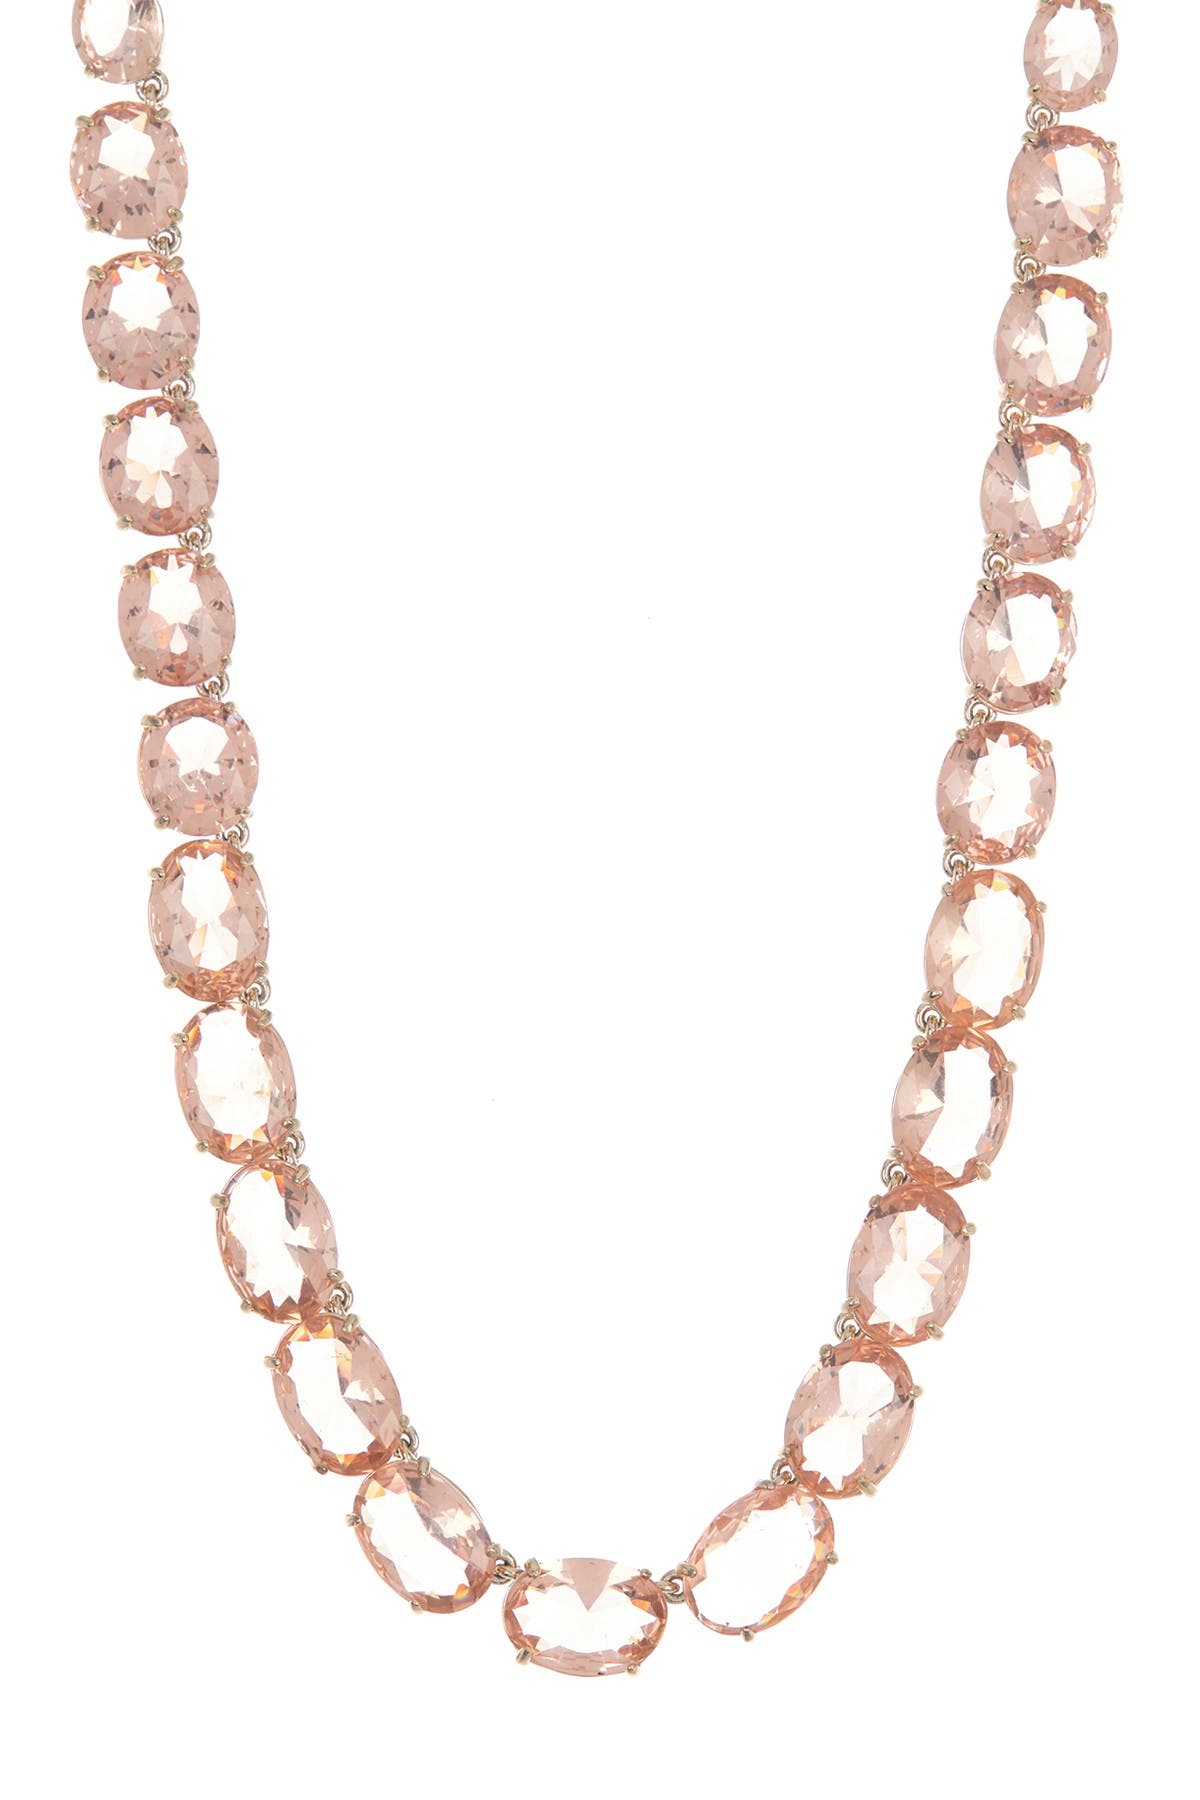 Image of Lauren Ralph Lauren Stone Collar Necklace